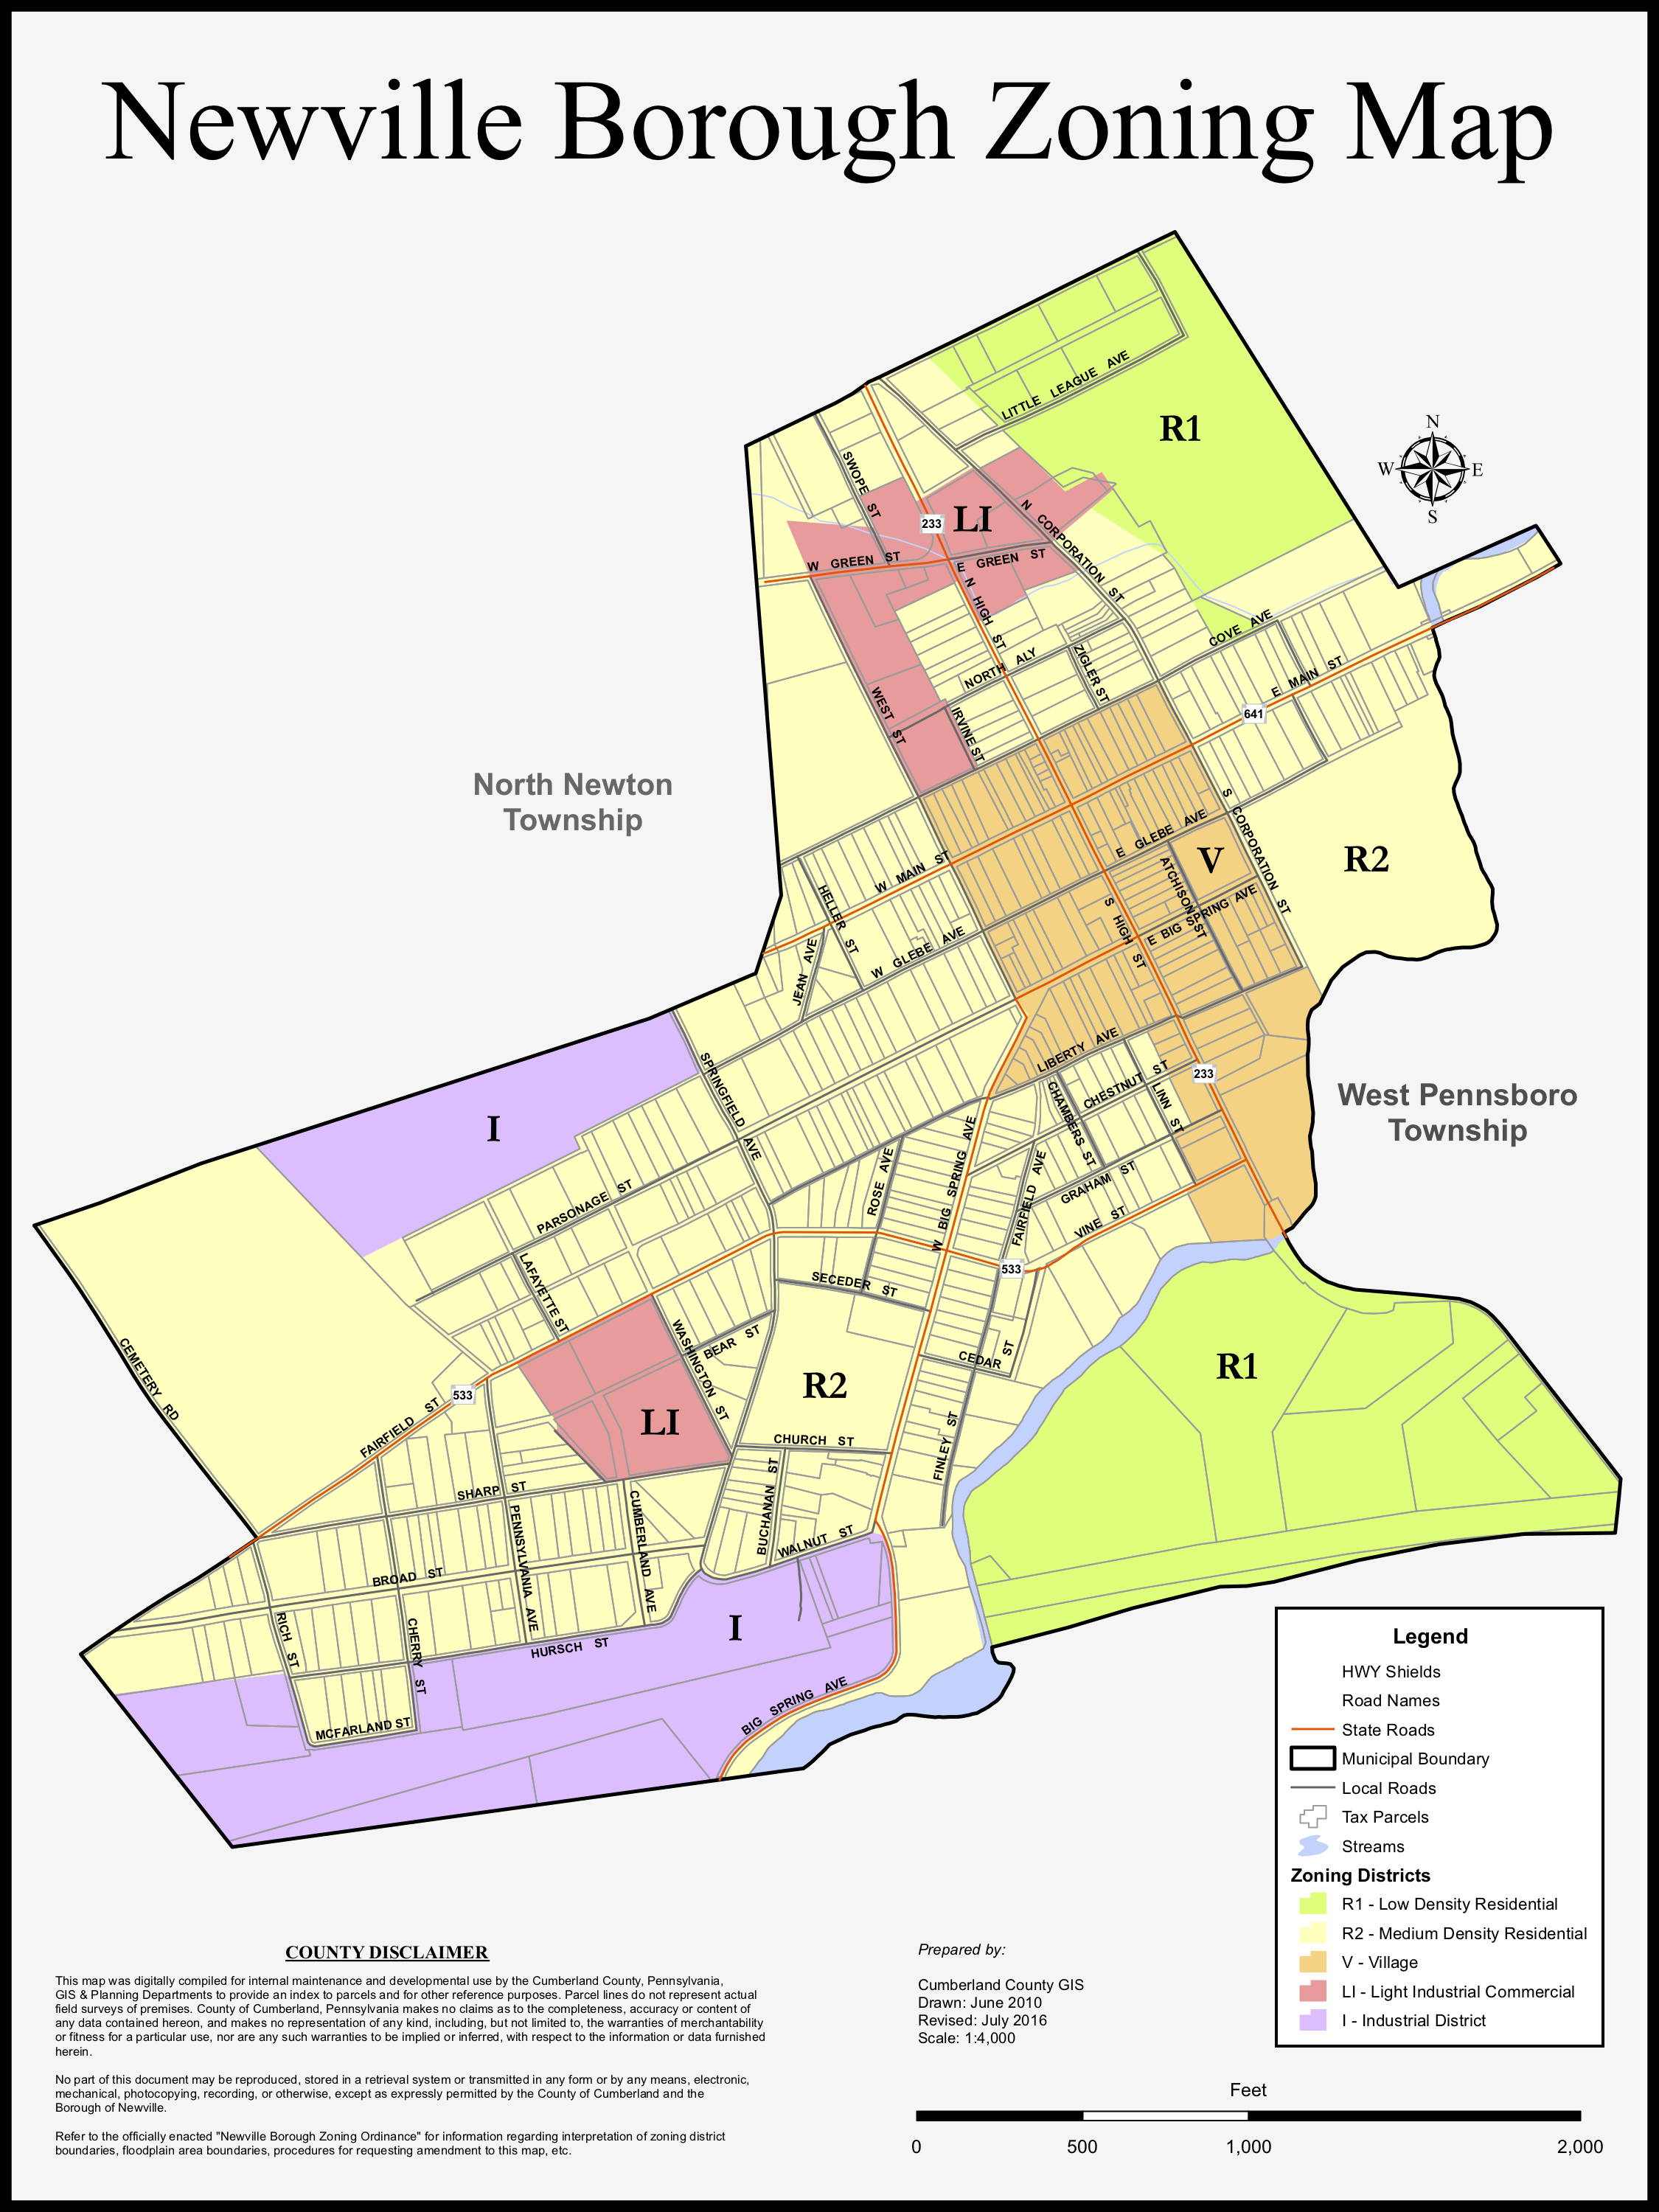 Newville Borough Zoning Map.png